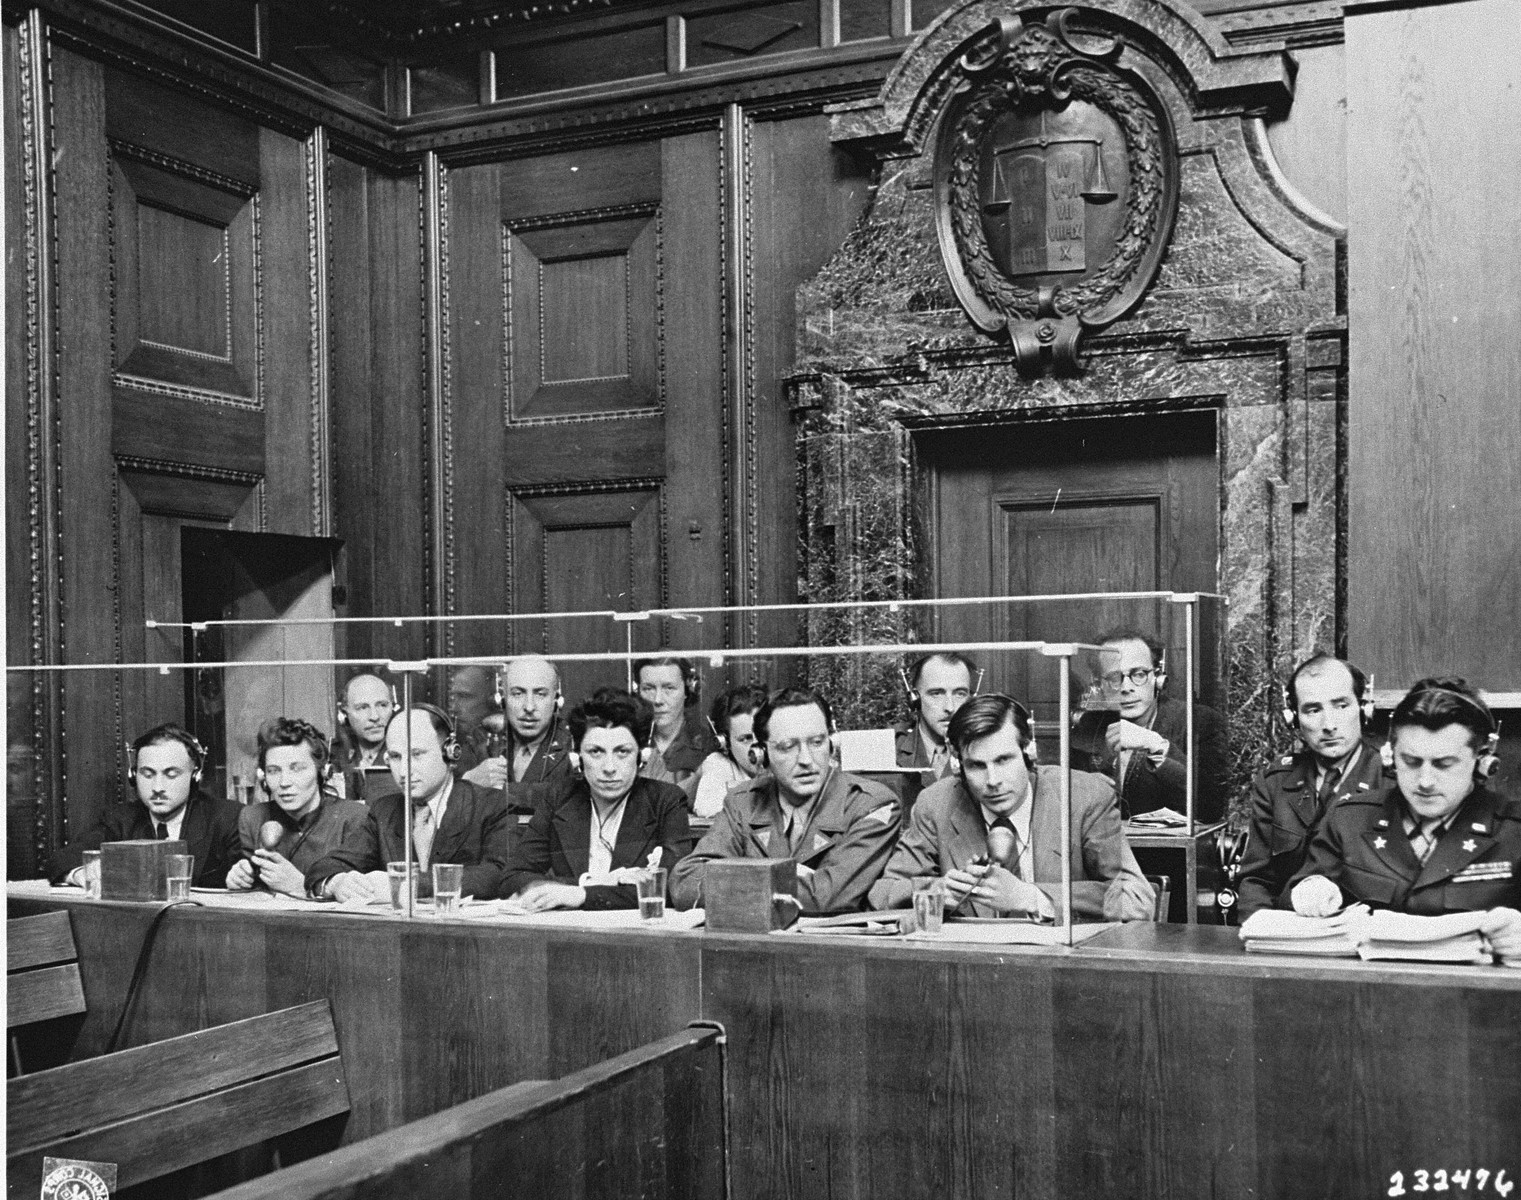 The interpreters' section at the International Military Tribunal trial of war criminals at Nuremberg.